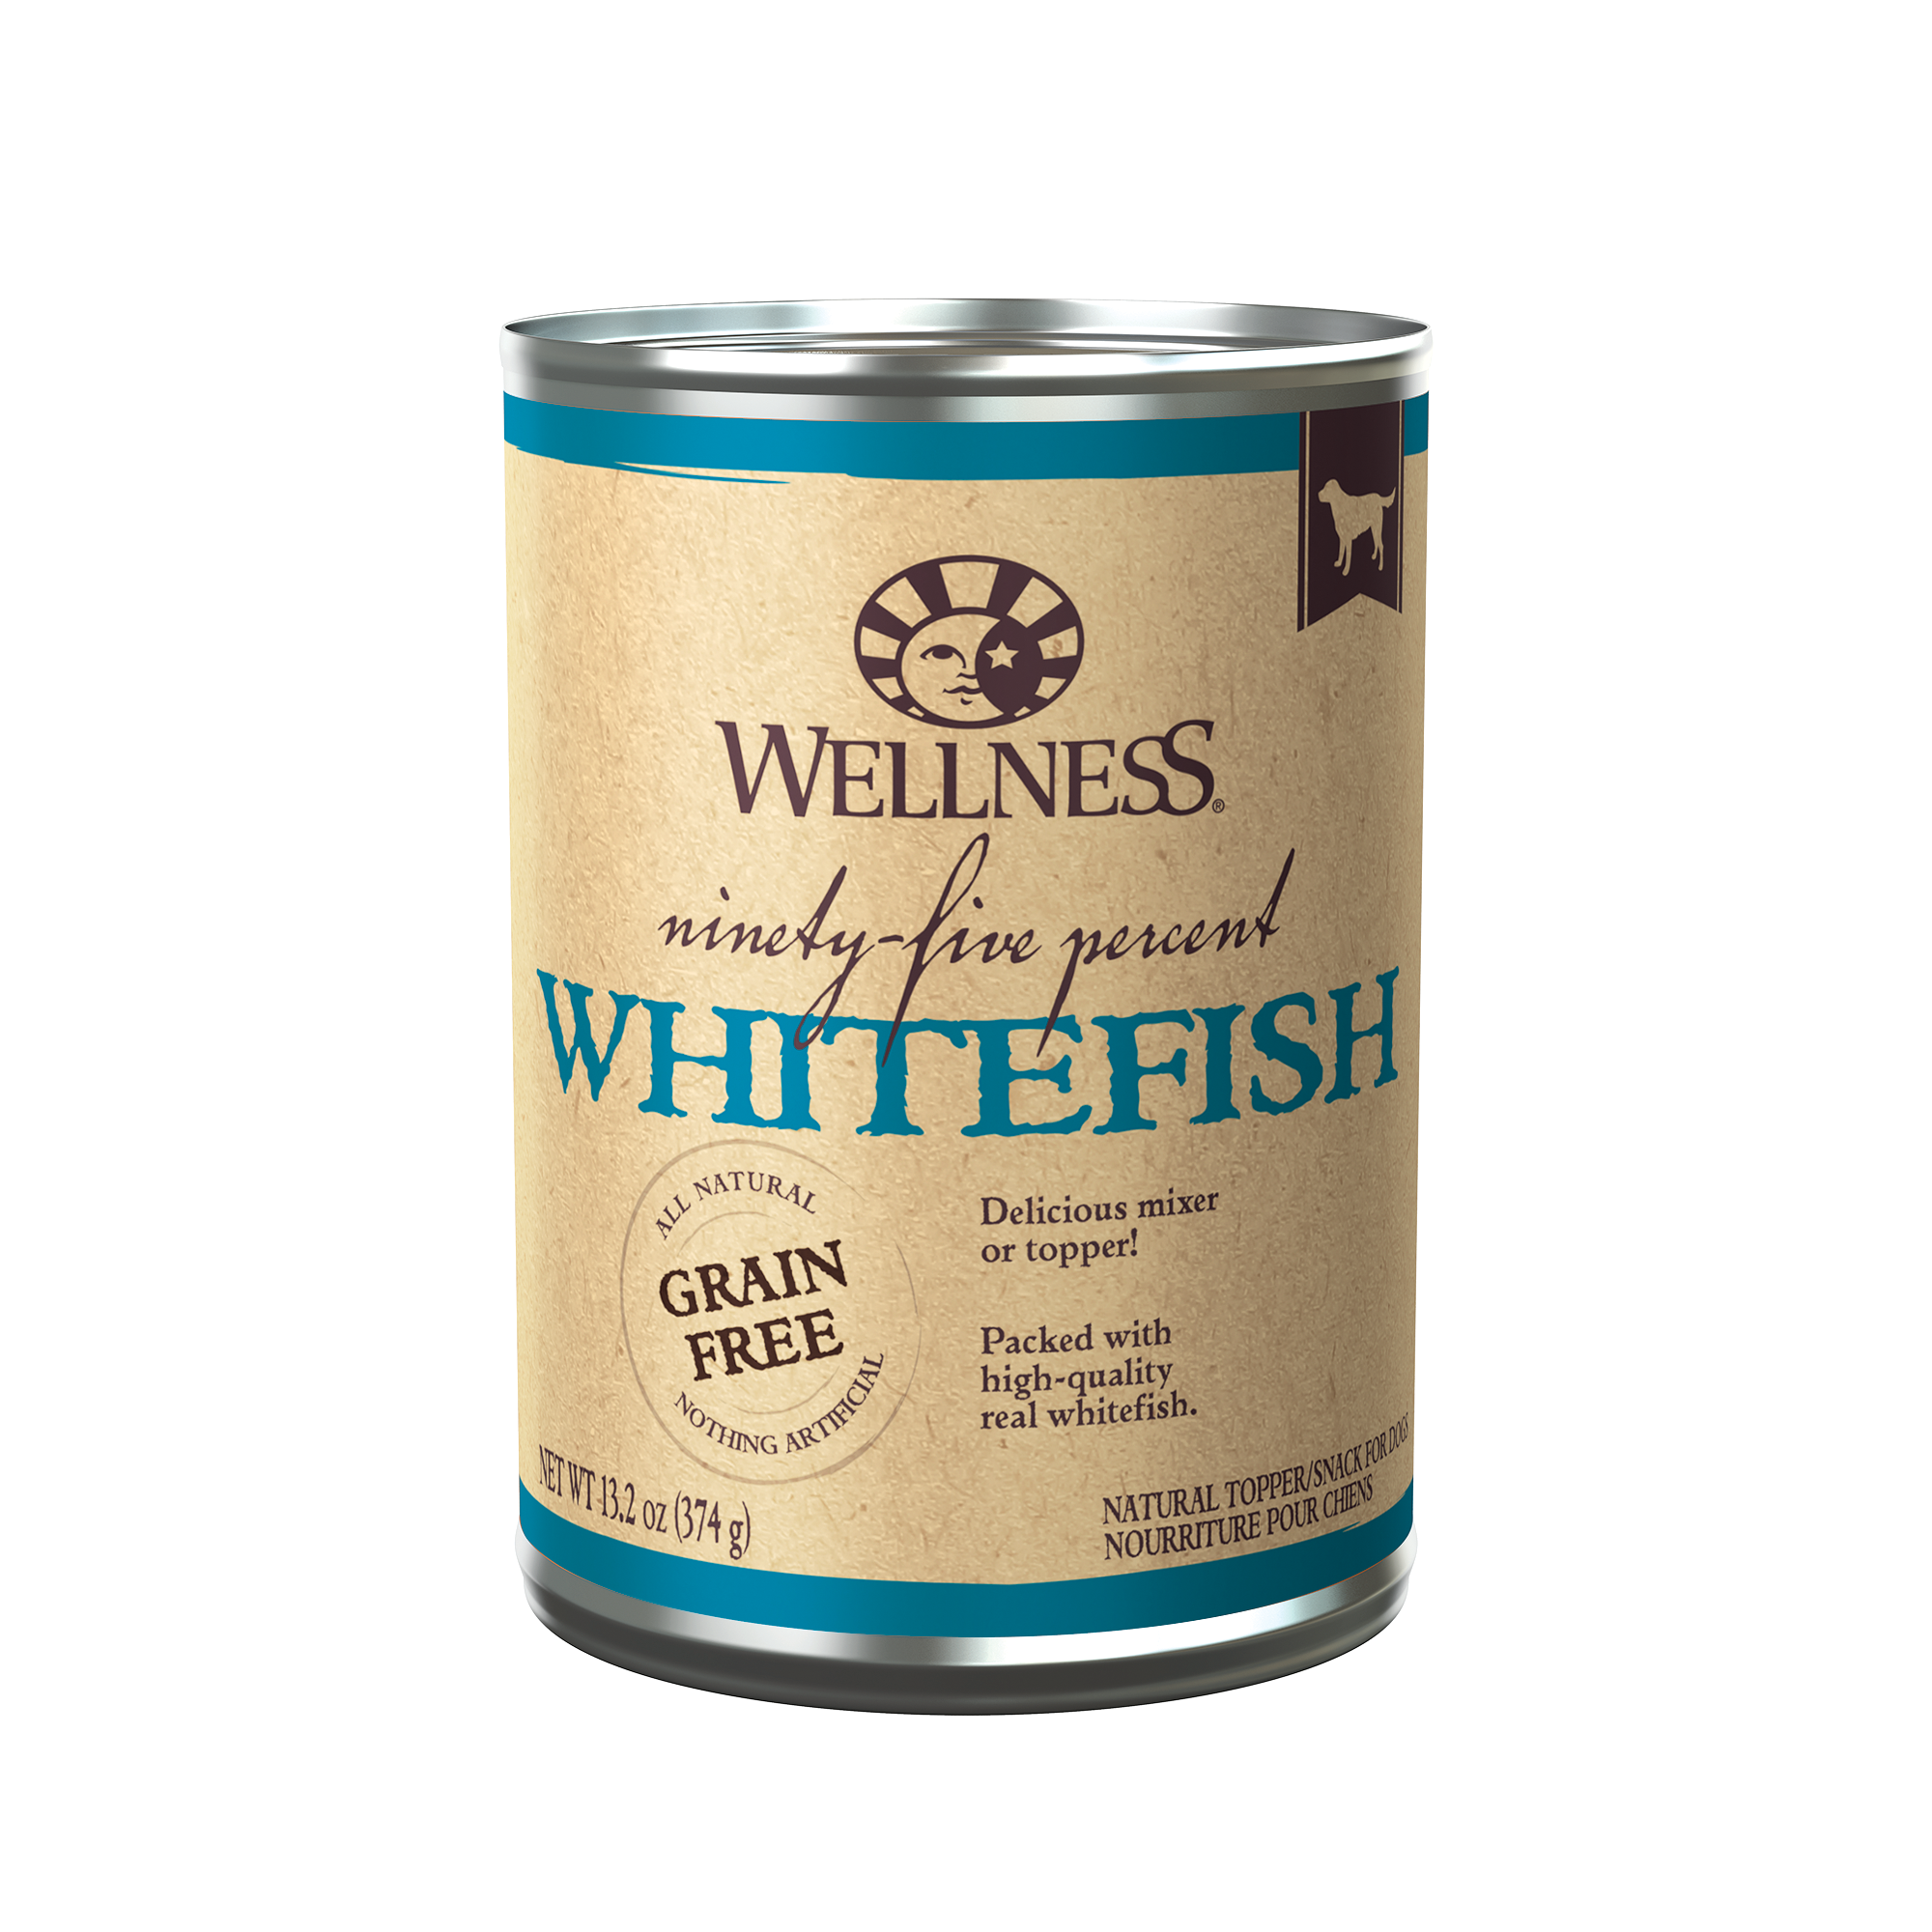 Wellness Ninety Five Percent Whitefish Mixer or Topper